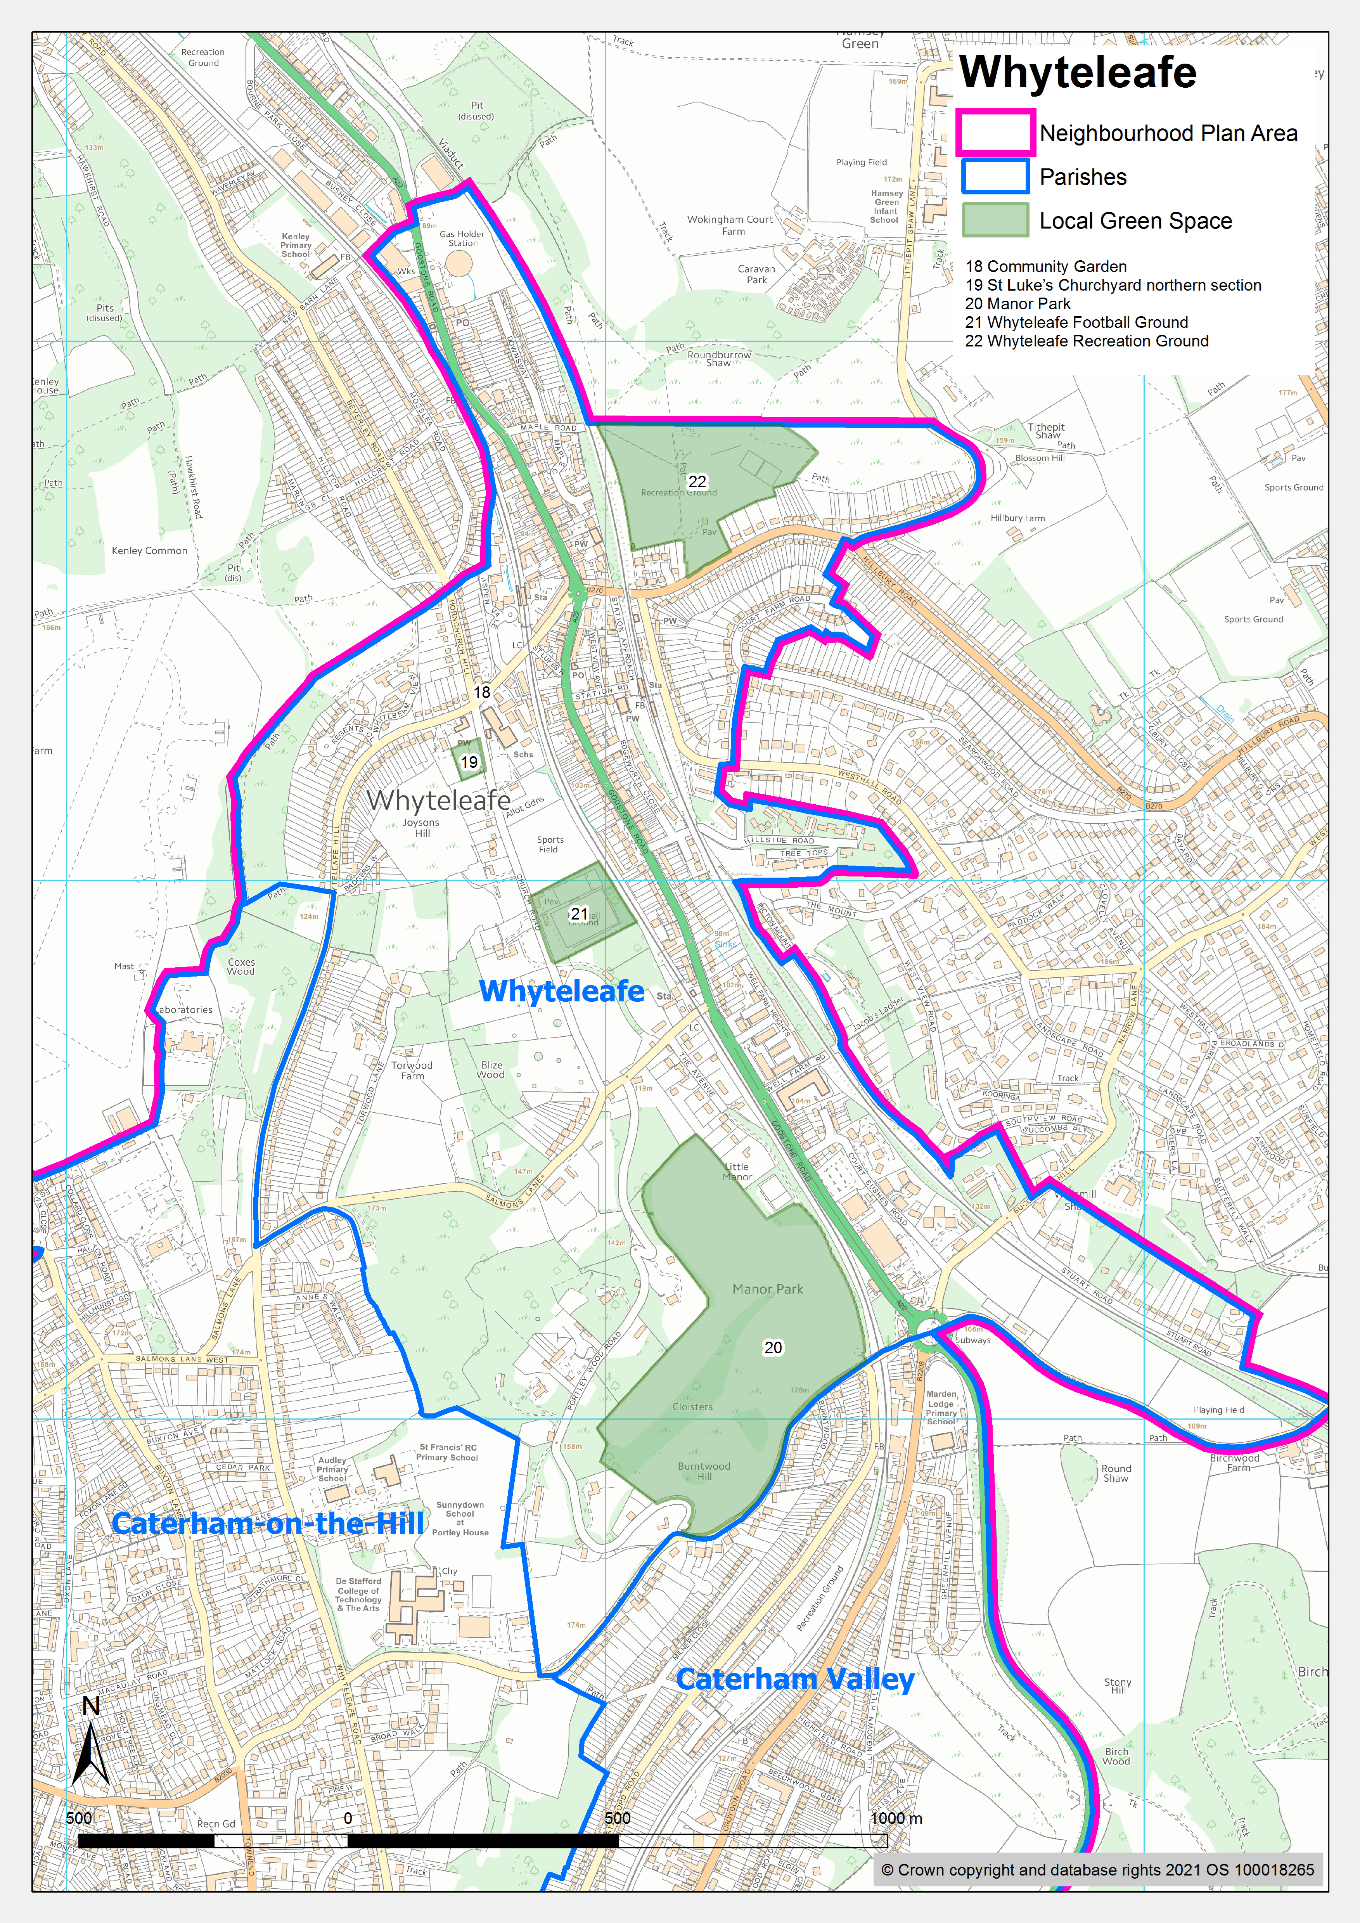 Map of Whyteleafe, showing designated logal green spaces